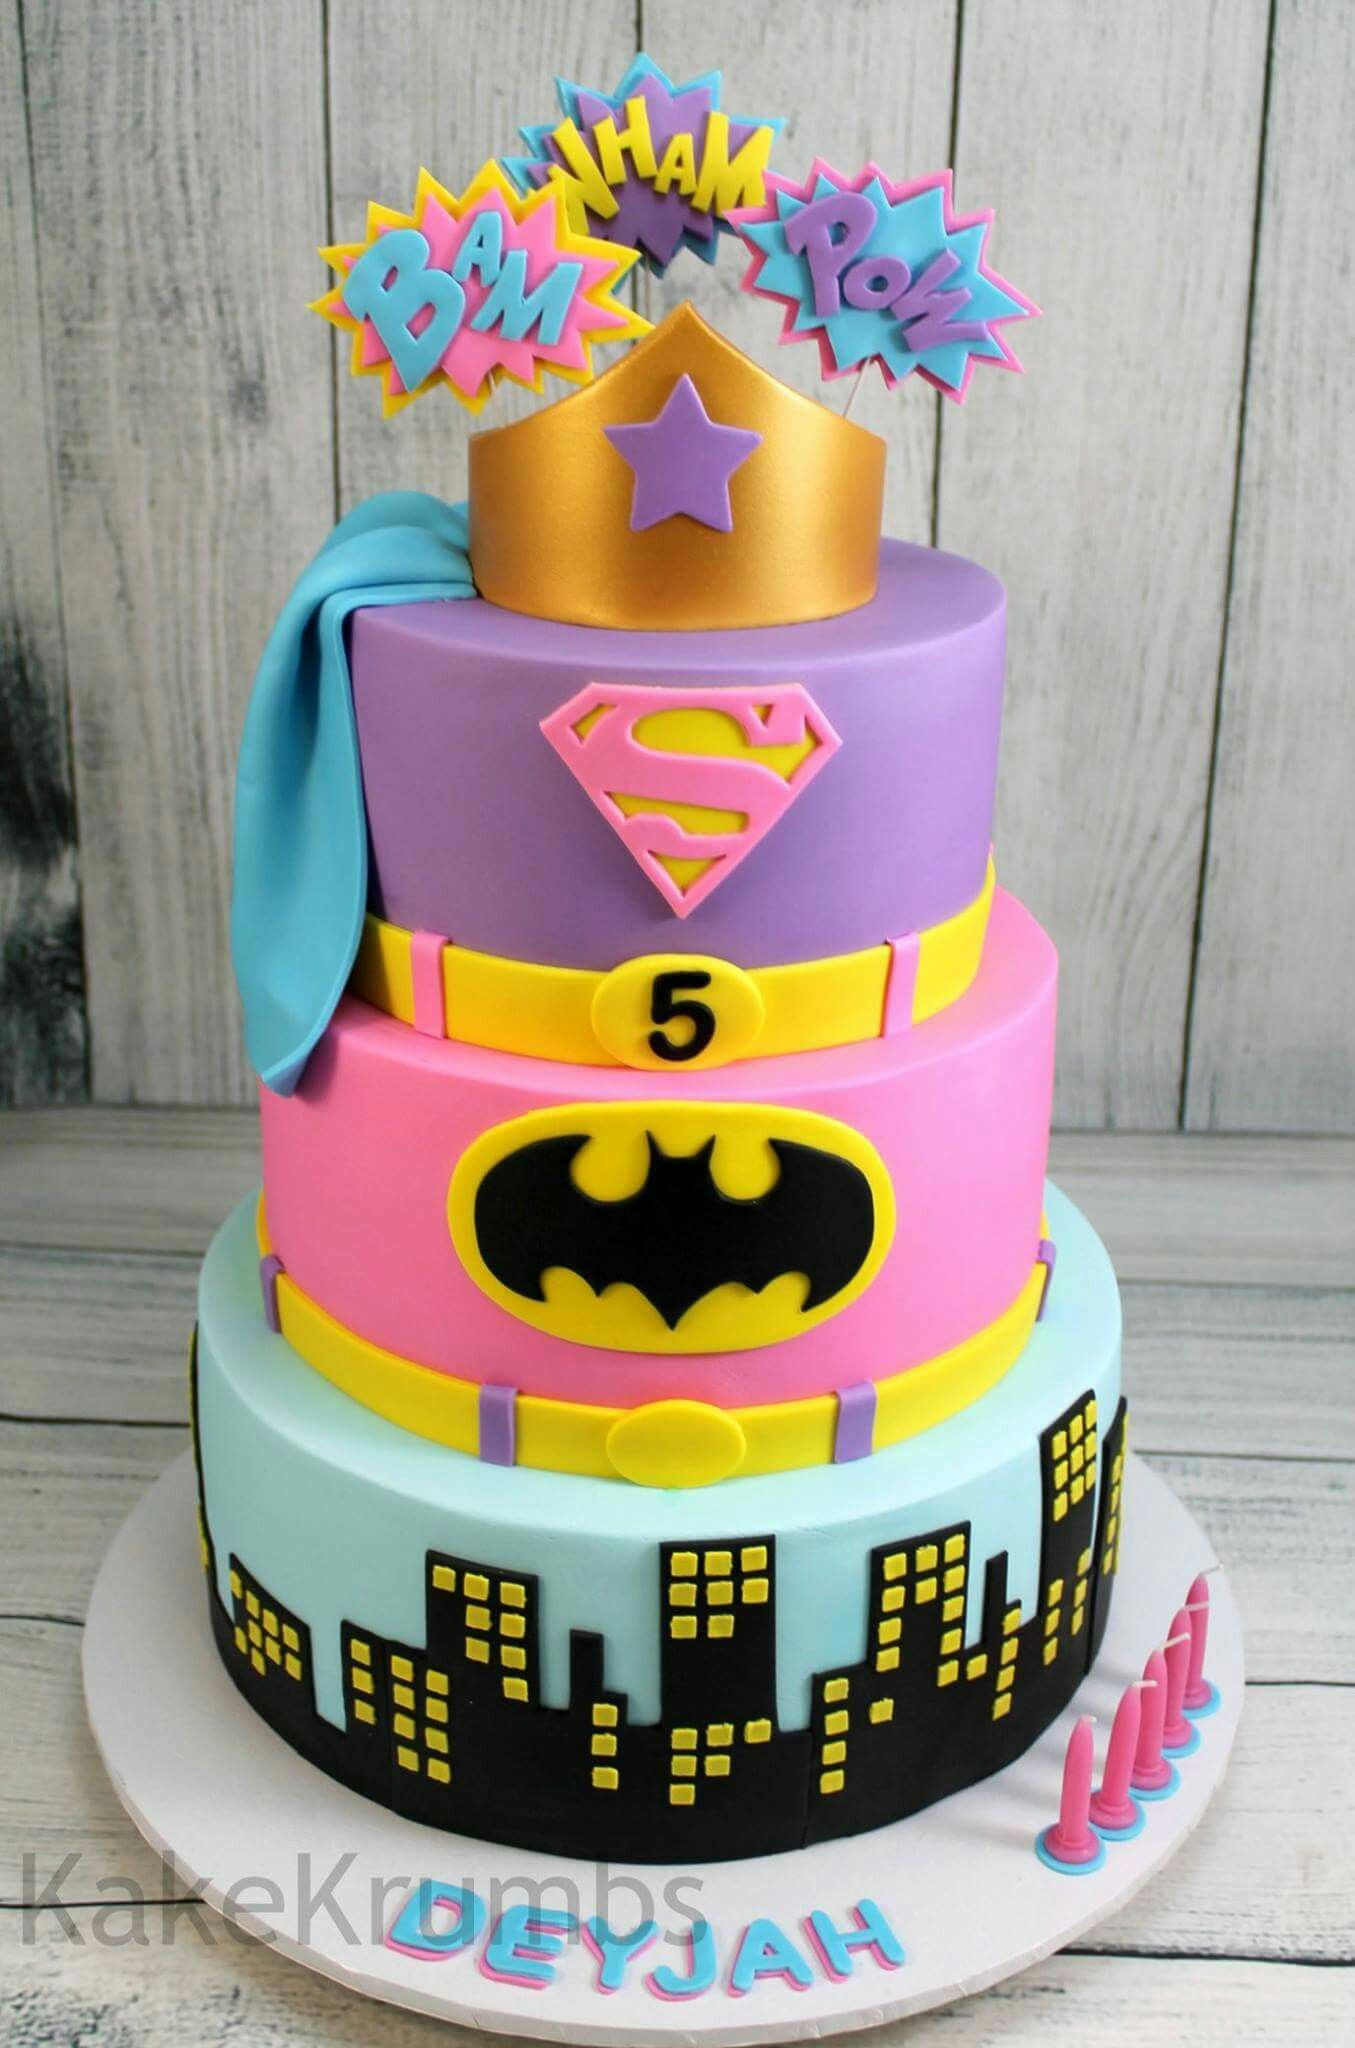 Best ideas about Superhero Birthday Cake . Save or Pin Girly super hero cake Cakes Now.